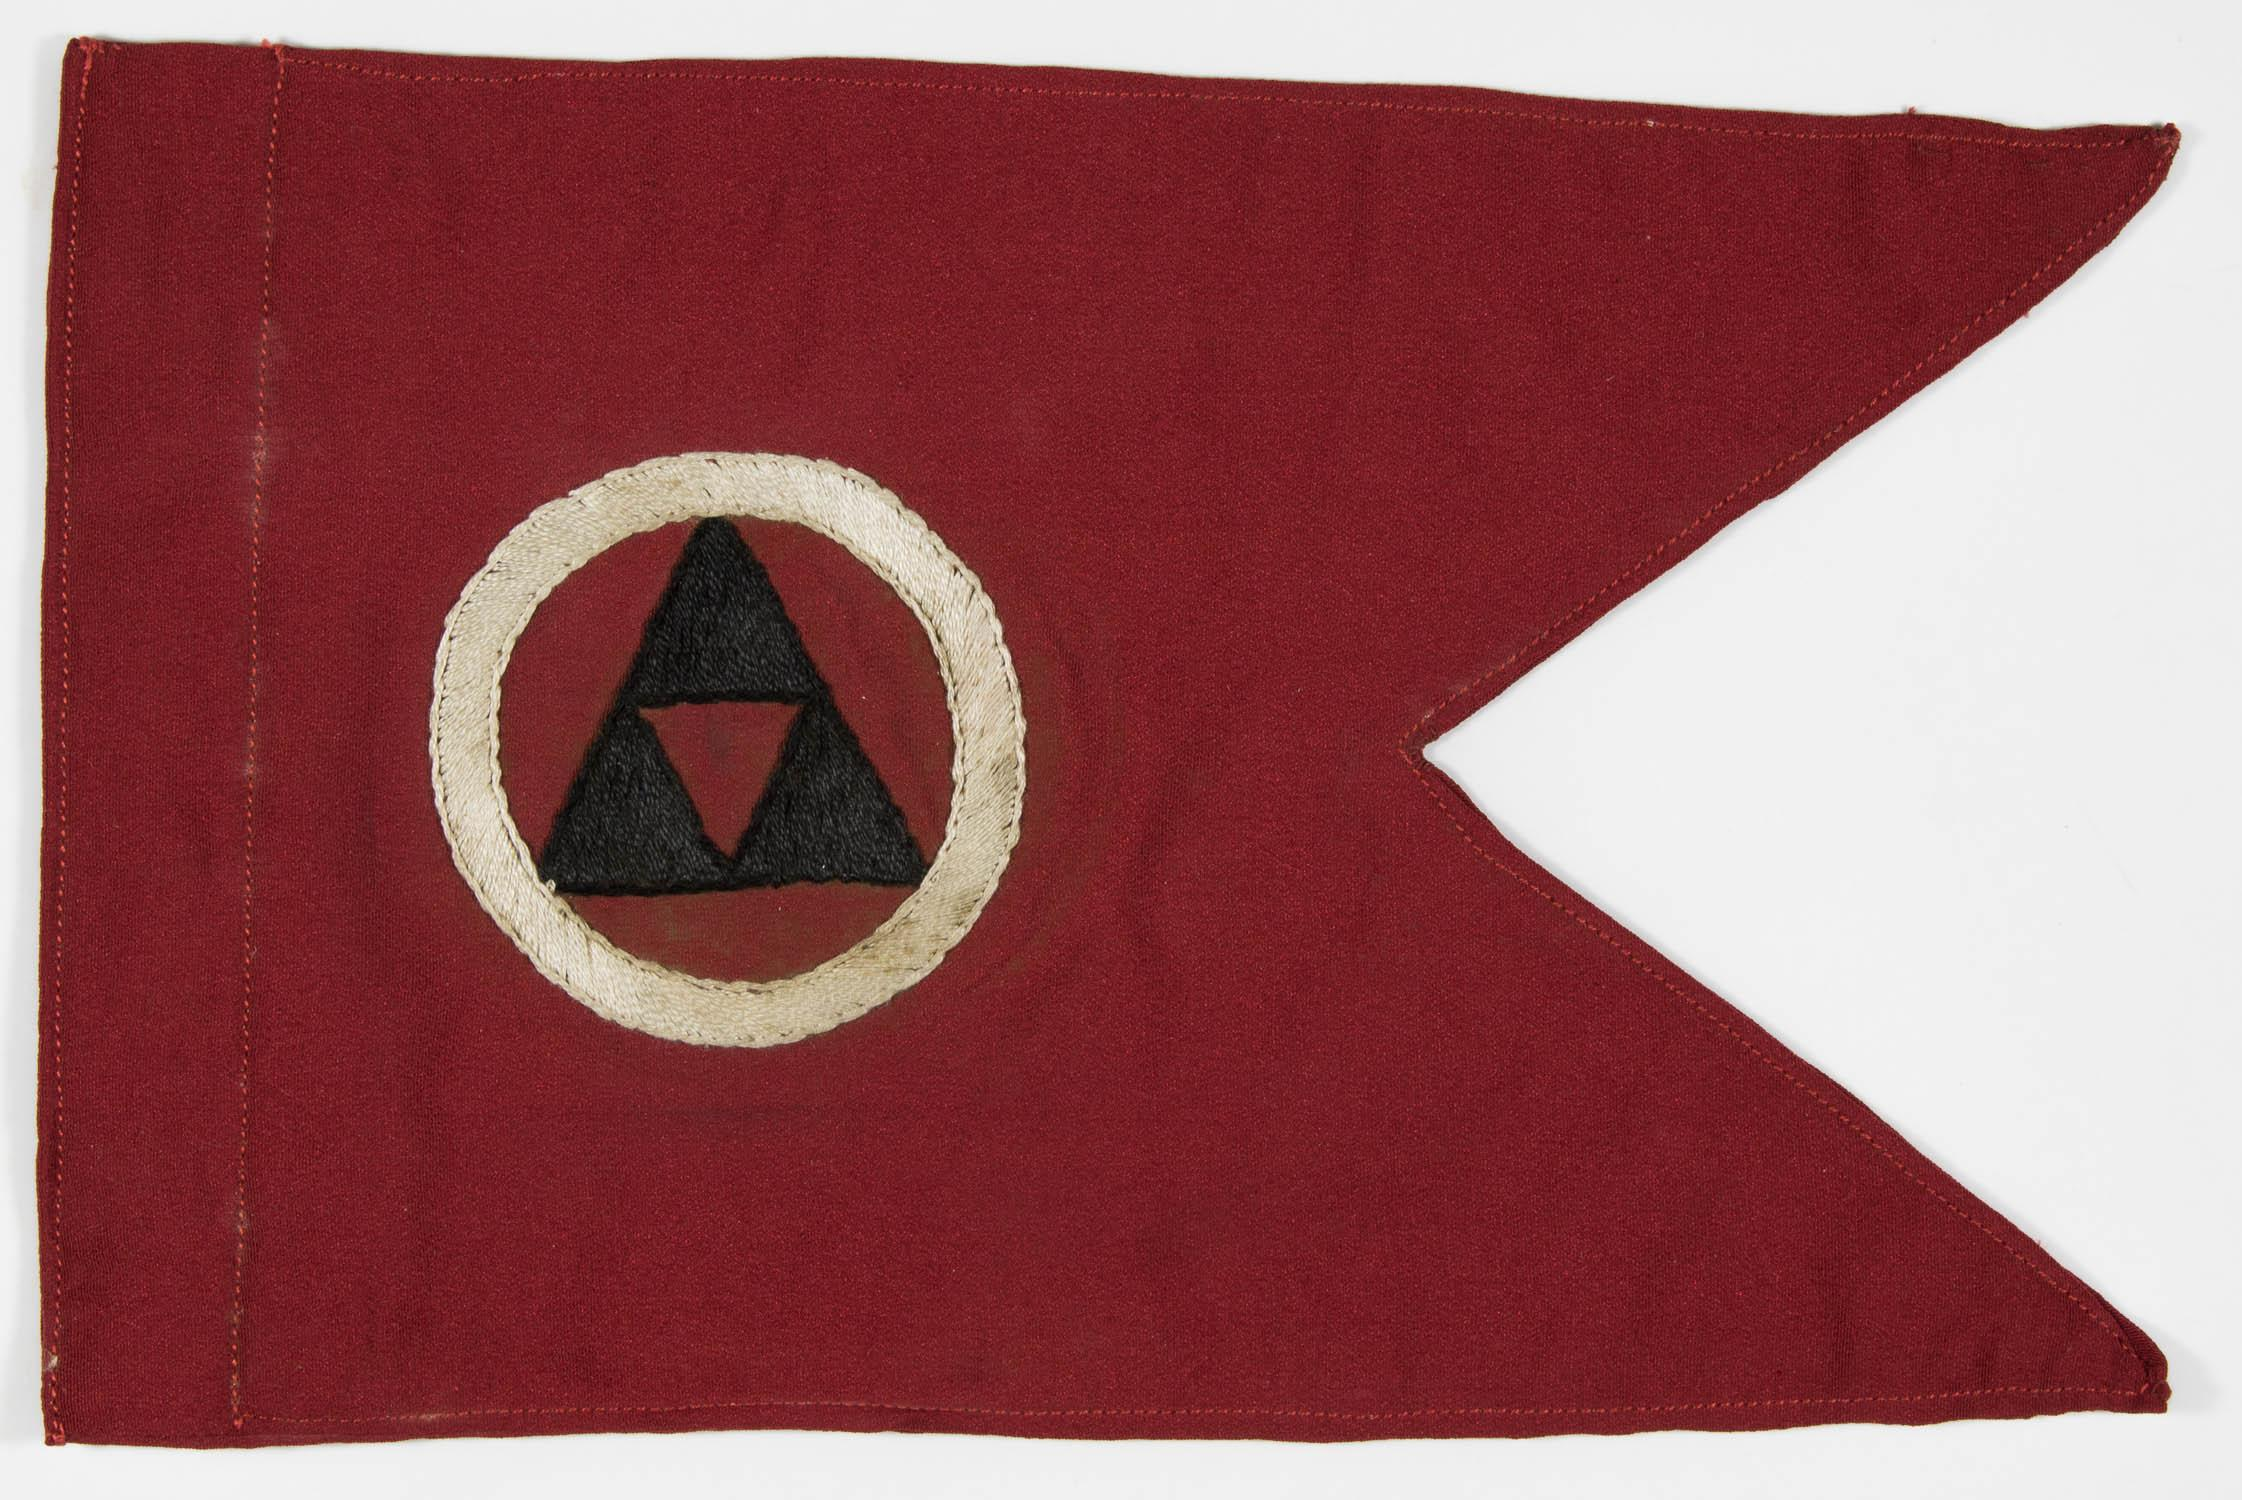 BERNARD LAW MONTGOMERY'S CAR PENNANT FROM THE B.E.F. AND DUNKIRK EVACUATION